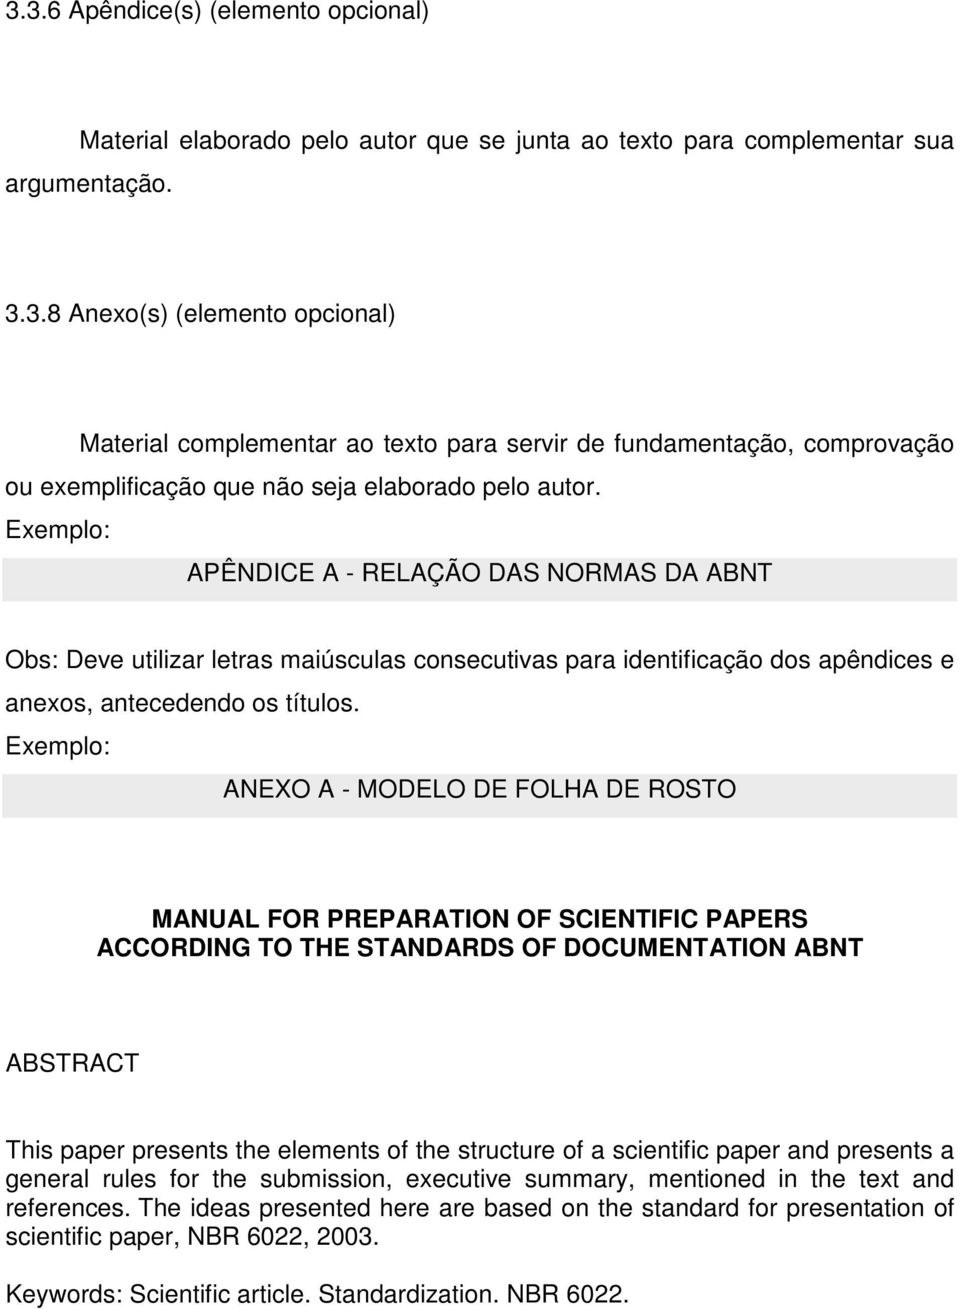 Exemplo: ANEXO A - MODELO DE FOLHA DE ROSTO MANUAL FOR PREPARATION OF SCIENTIFIC PAPERS ACCORDING TO THE STANDARDS OF DOCUMENTATION ABNT ABSTRACT This paper presents the elements of the structure of